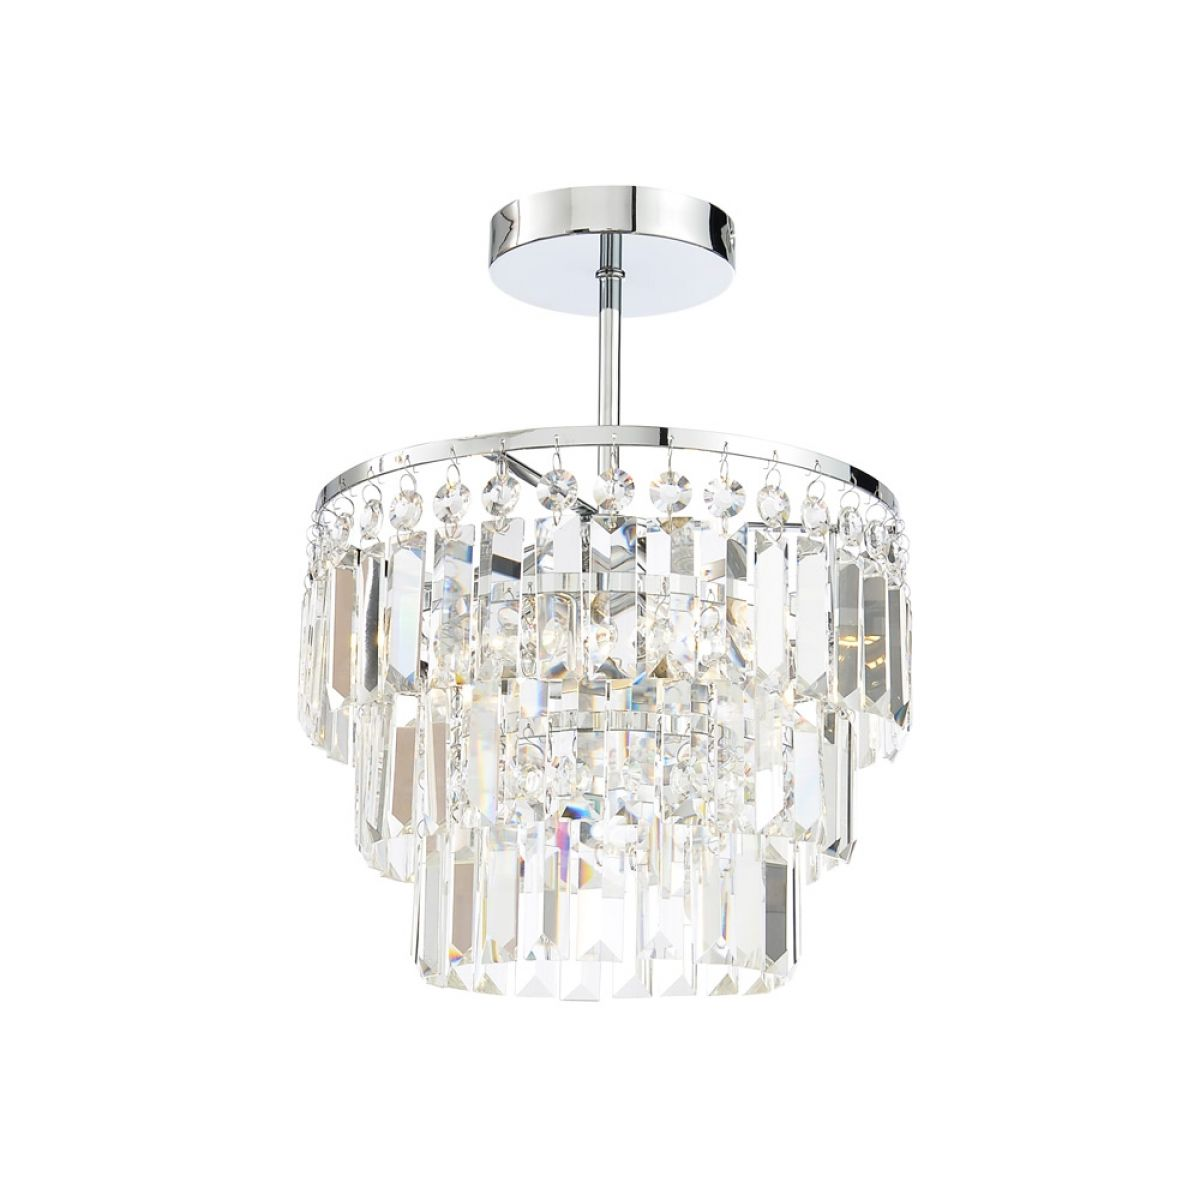 Forum Belle Crystal Chisel Cut Bars Semi Flush